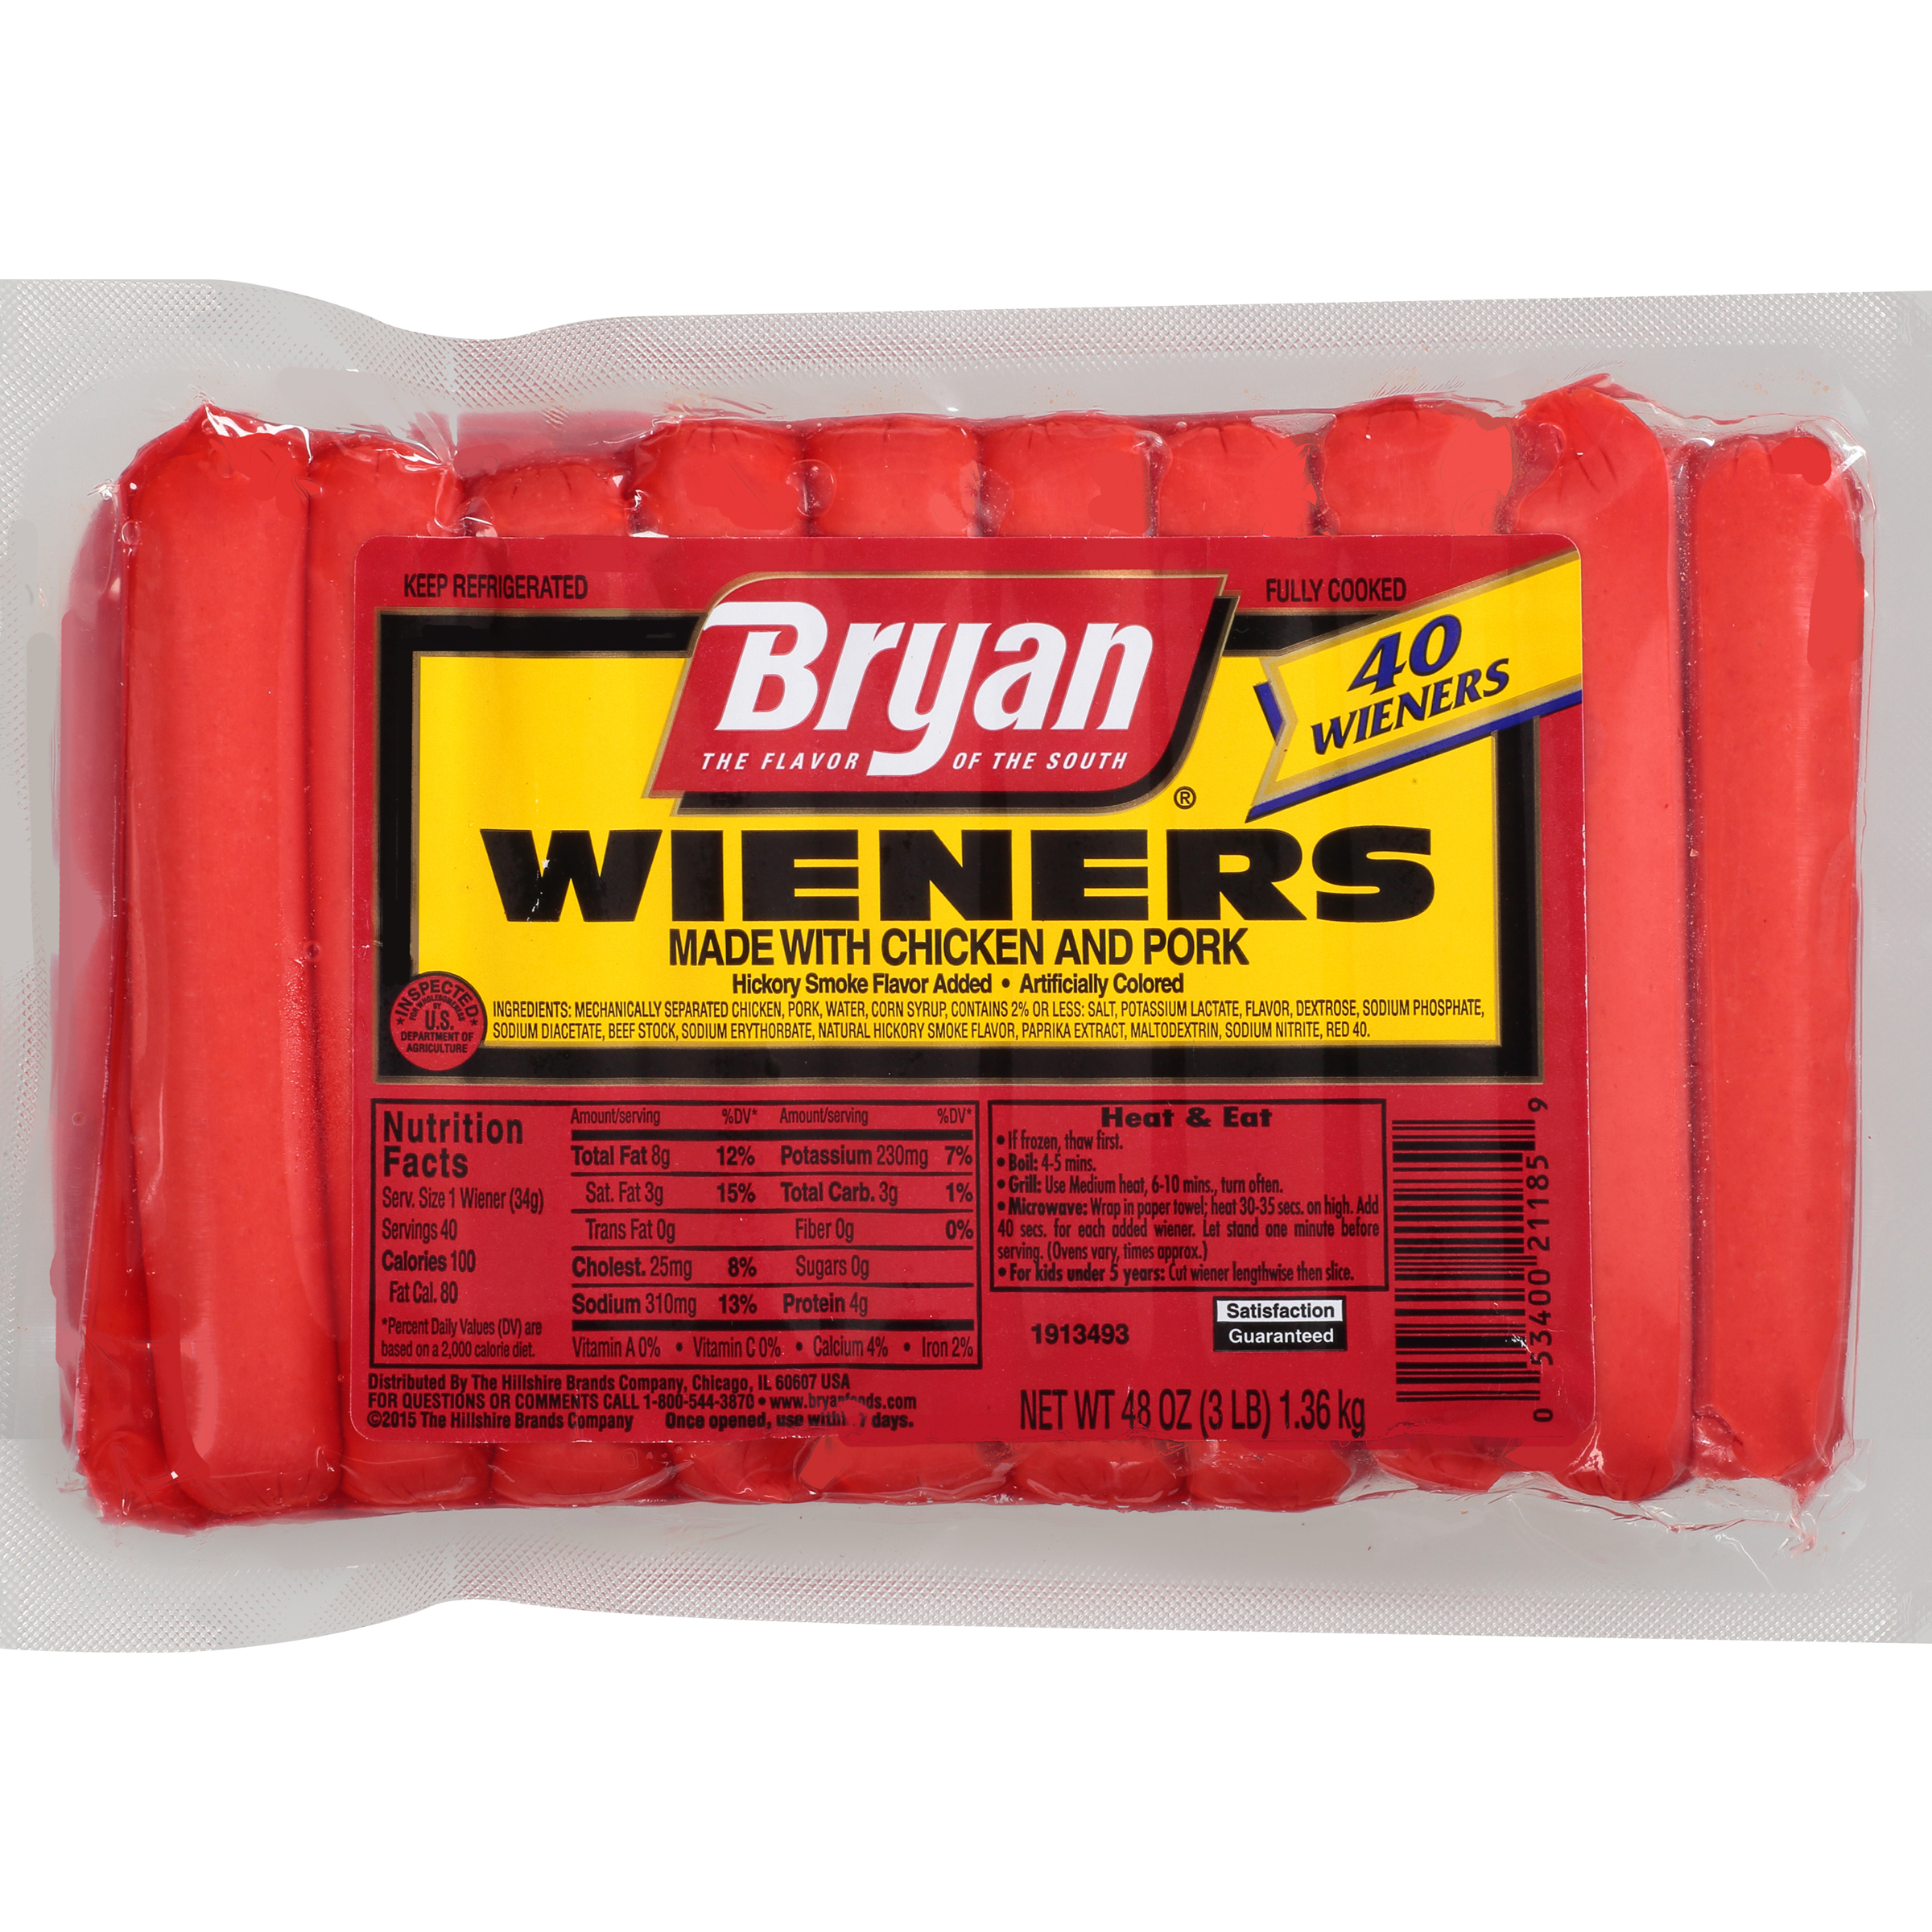 Bryan® Hickory Smoke Wieners, 40 Count